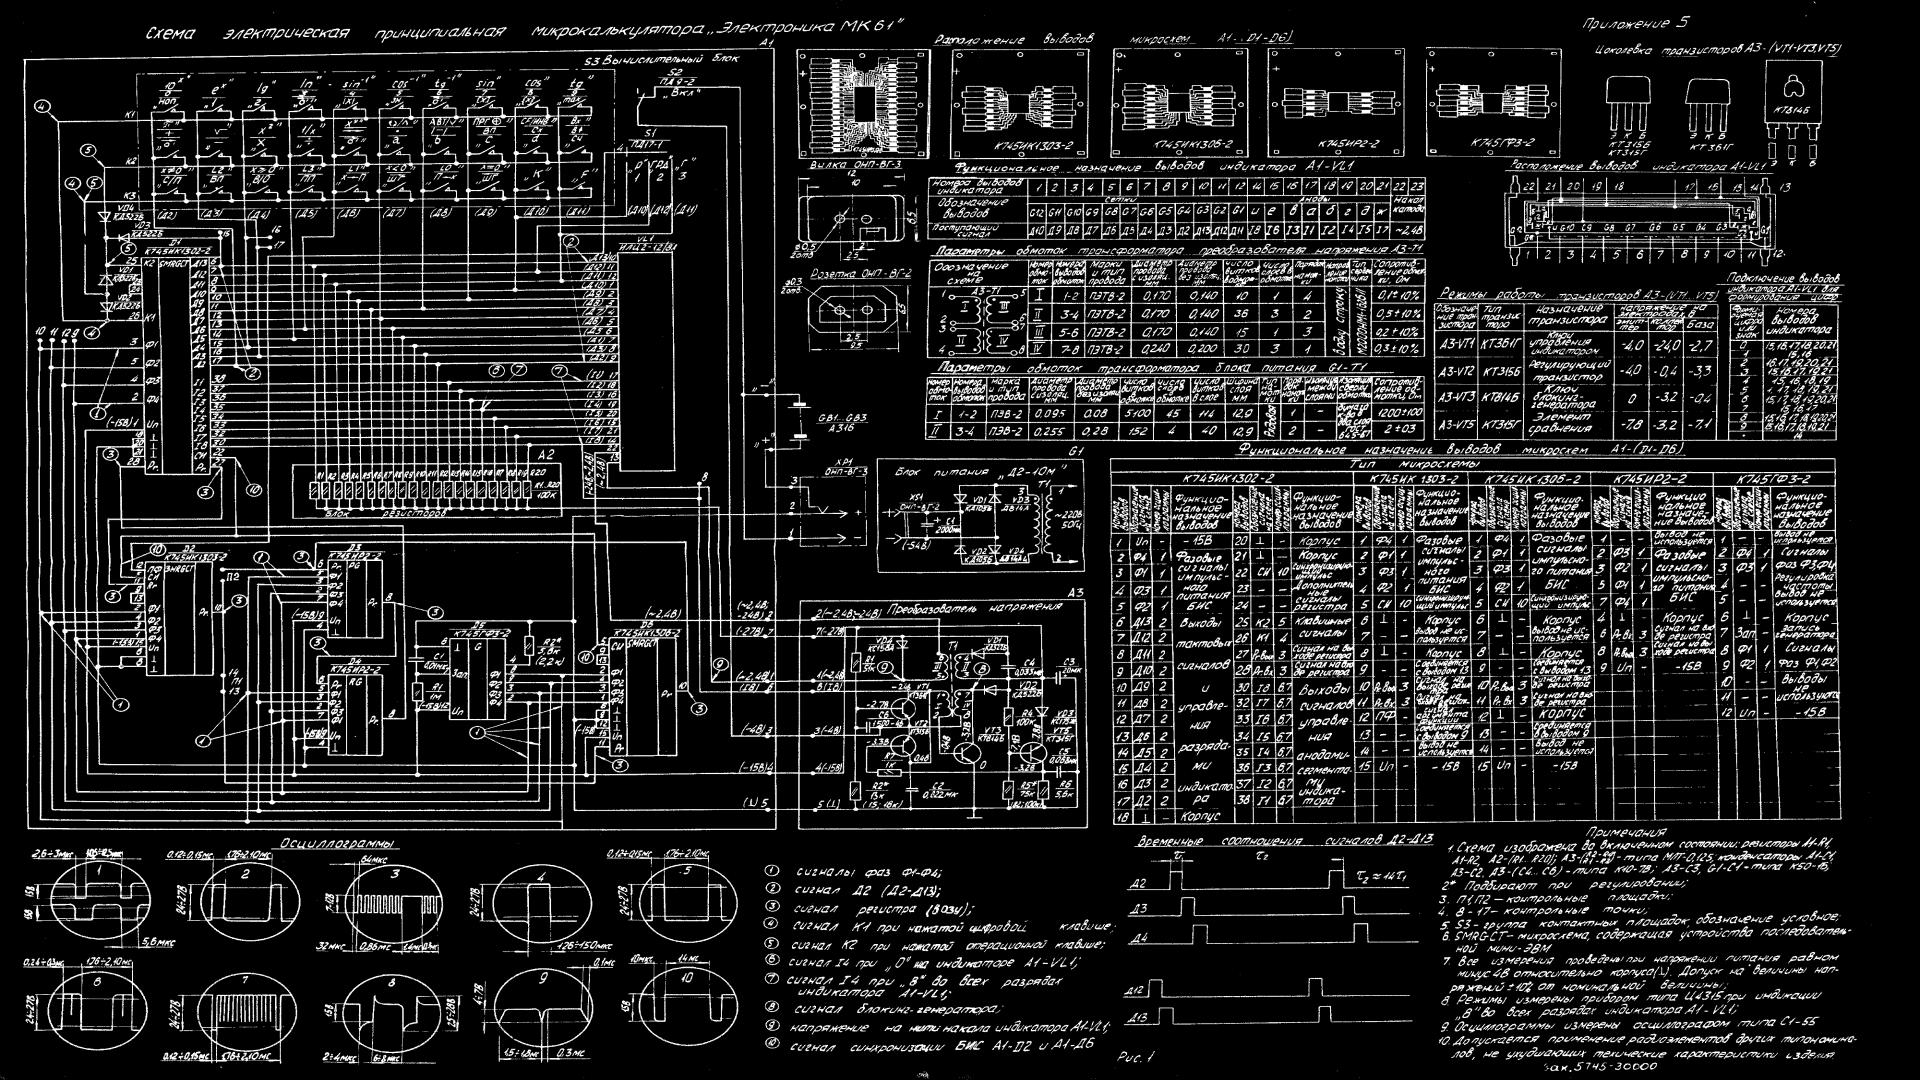 Schematic of a Russian MK 61 calculator HD Wallpaper Background 1920x1080